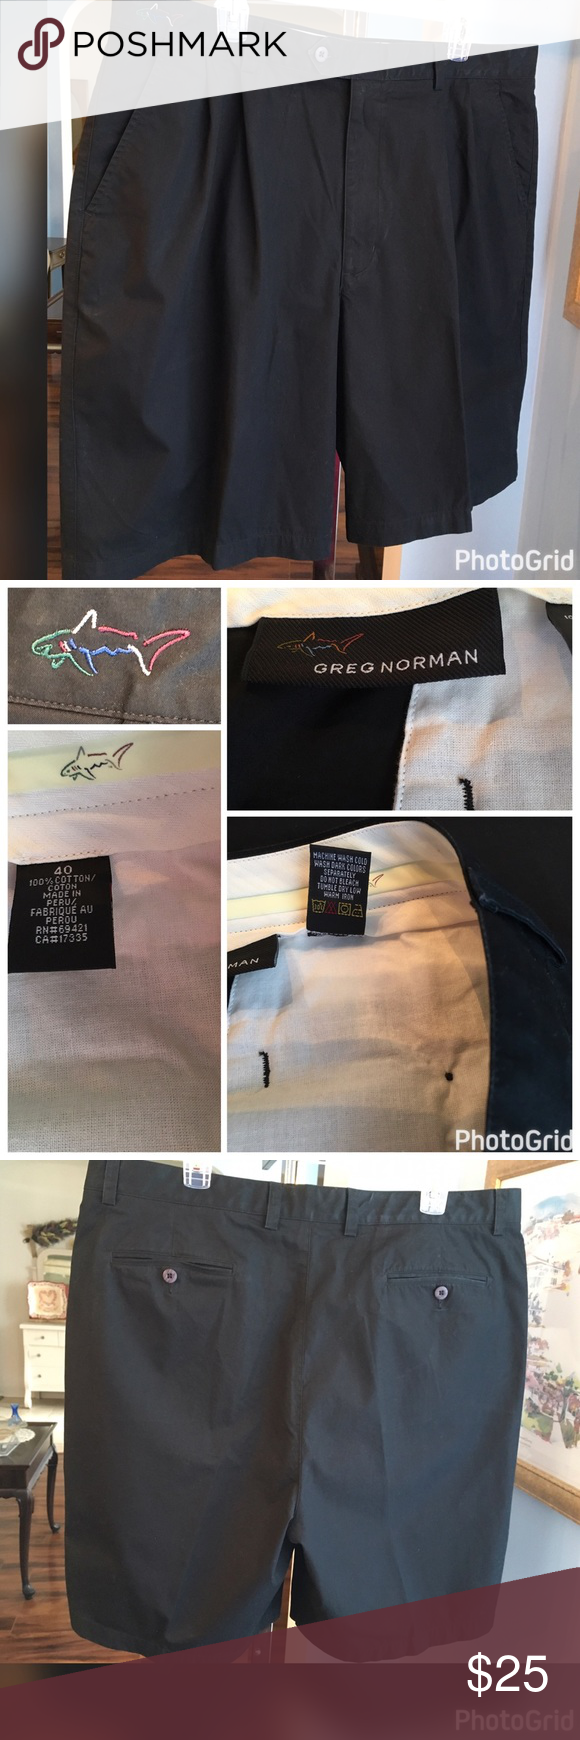 Greg Norman Black Shorts Greg Norman black shorts. Excellent condition. Greg Norman Shorts